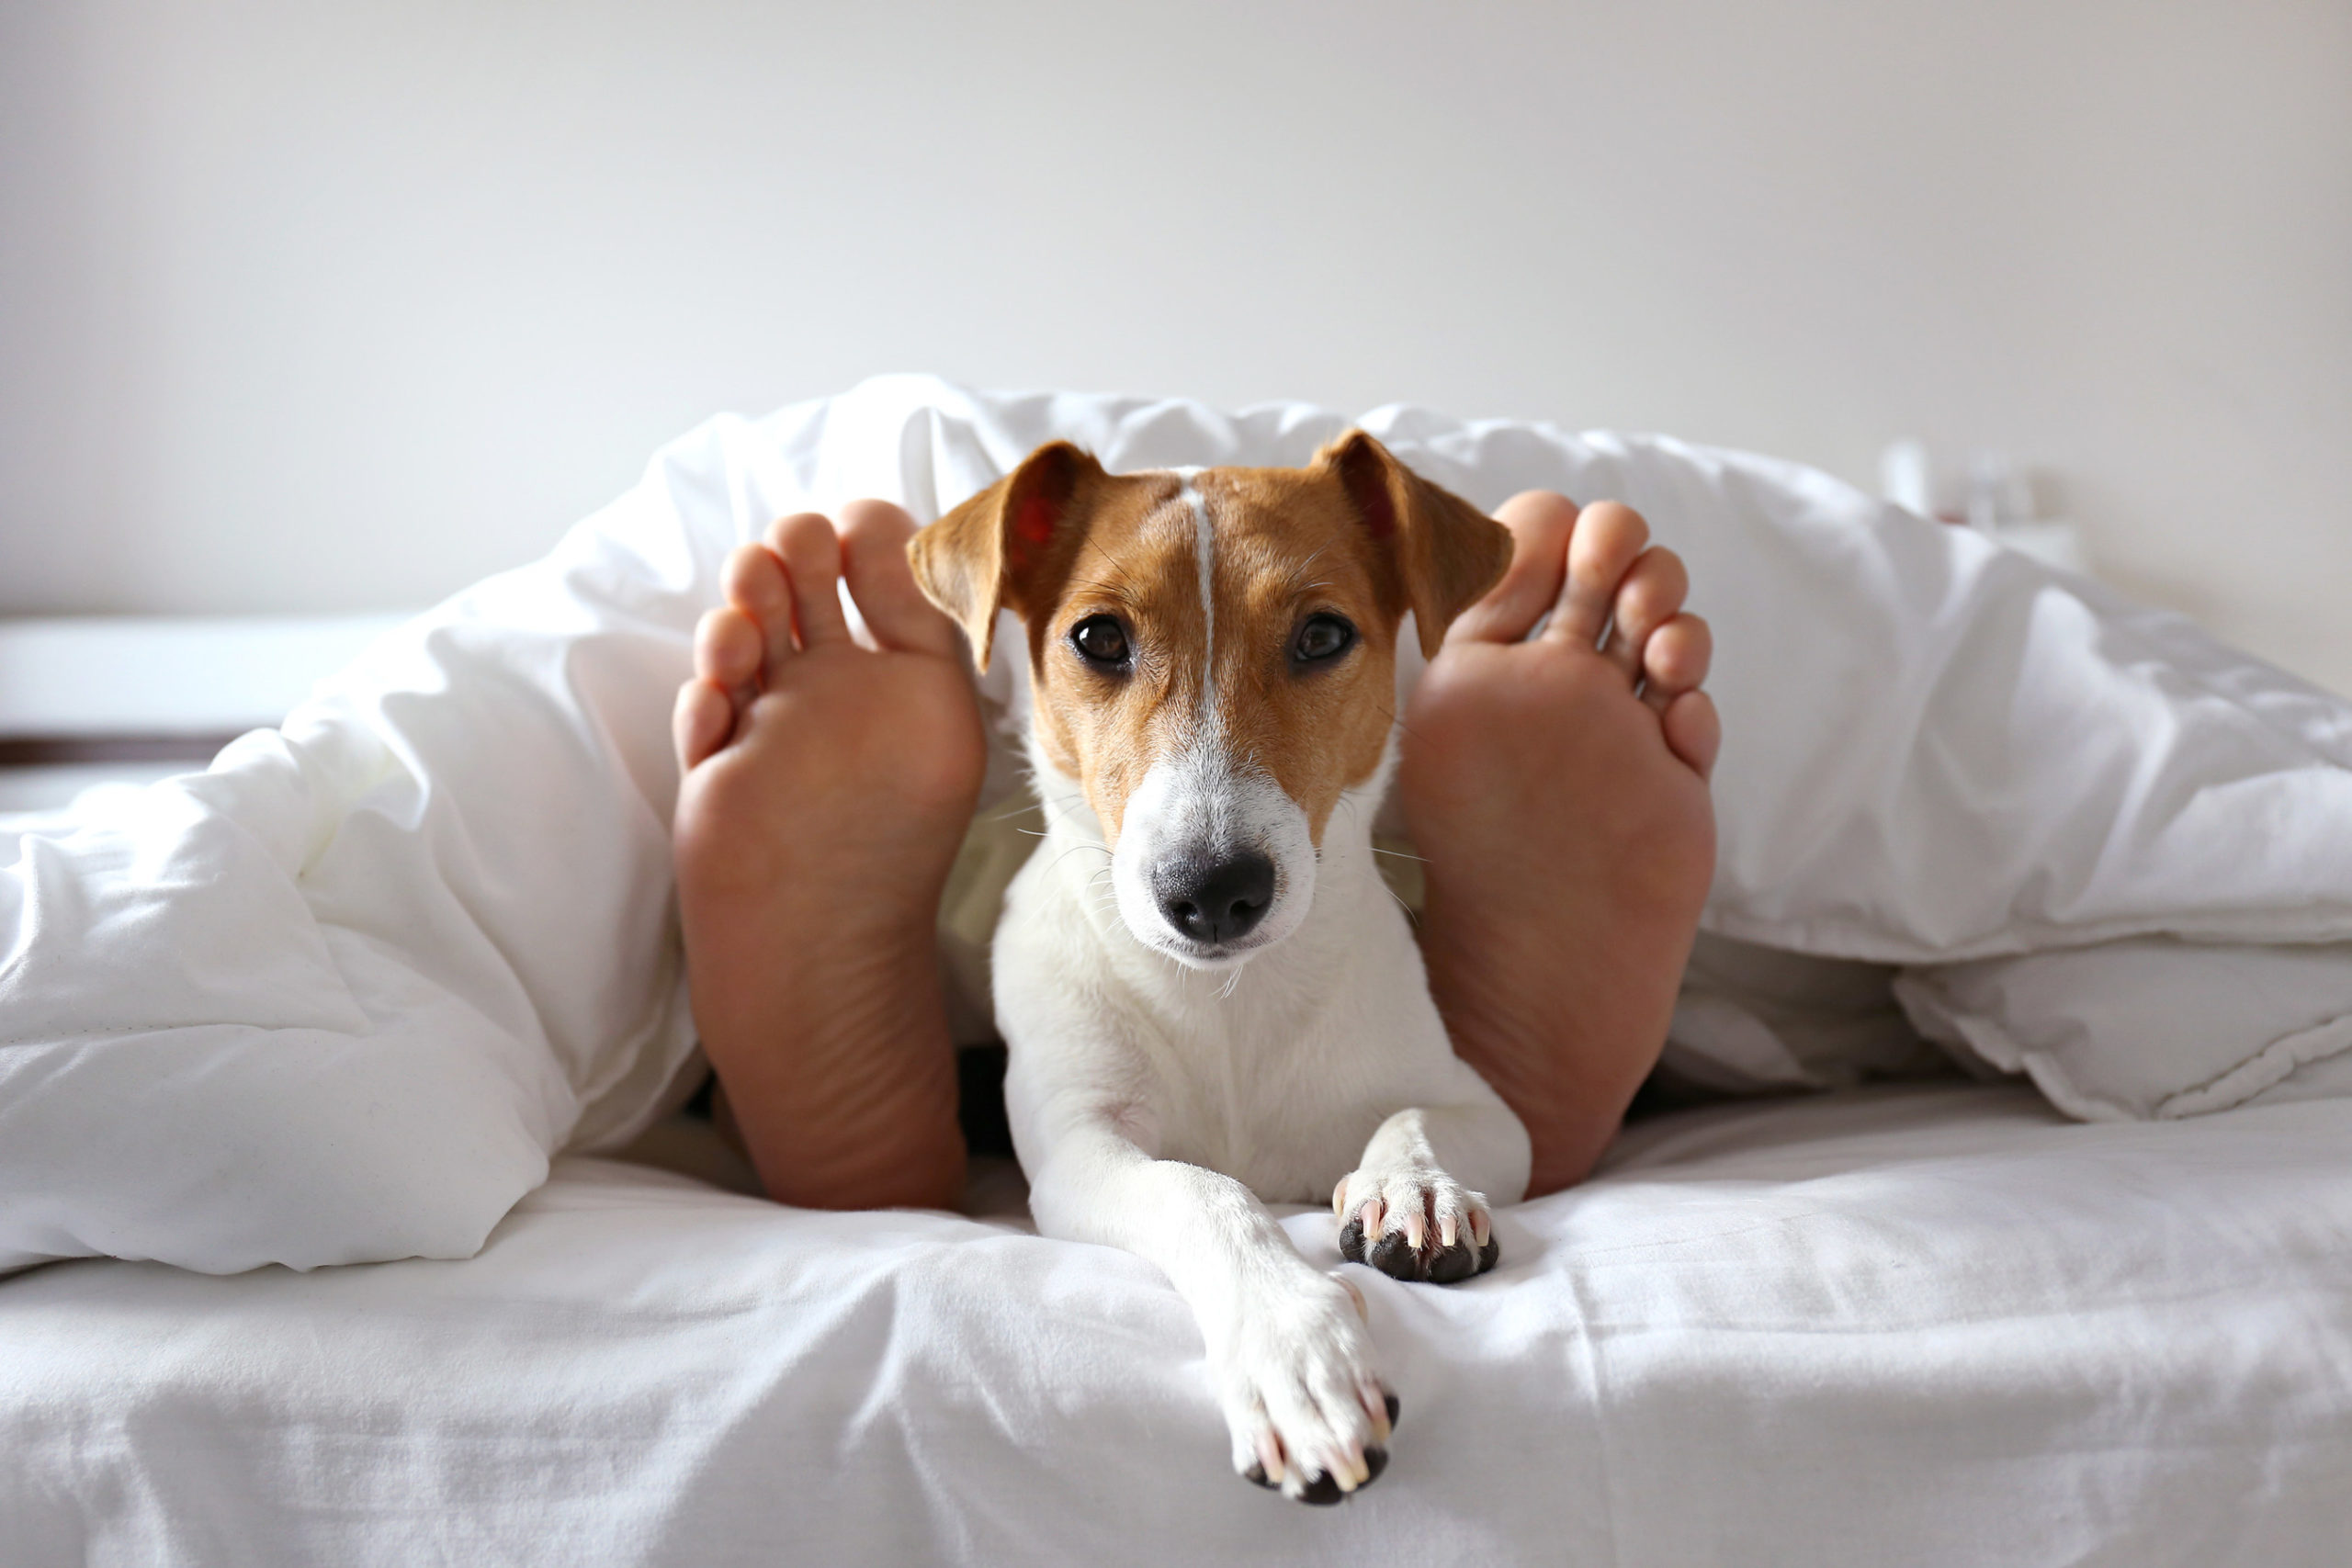 Dog-Friendly Hotels Around The World Perfect For A Fur Kid Vacation